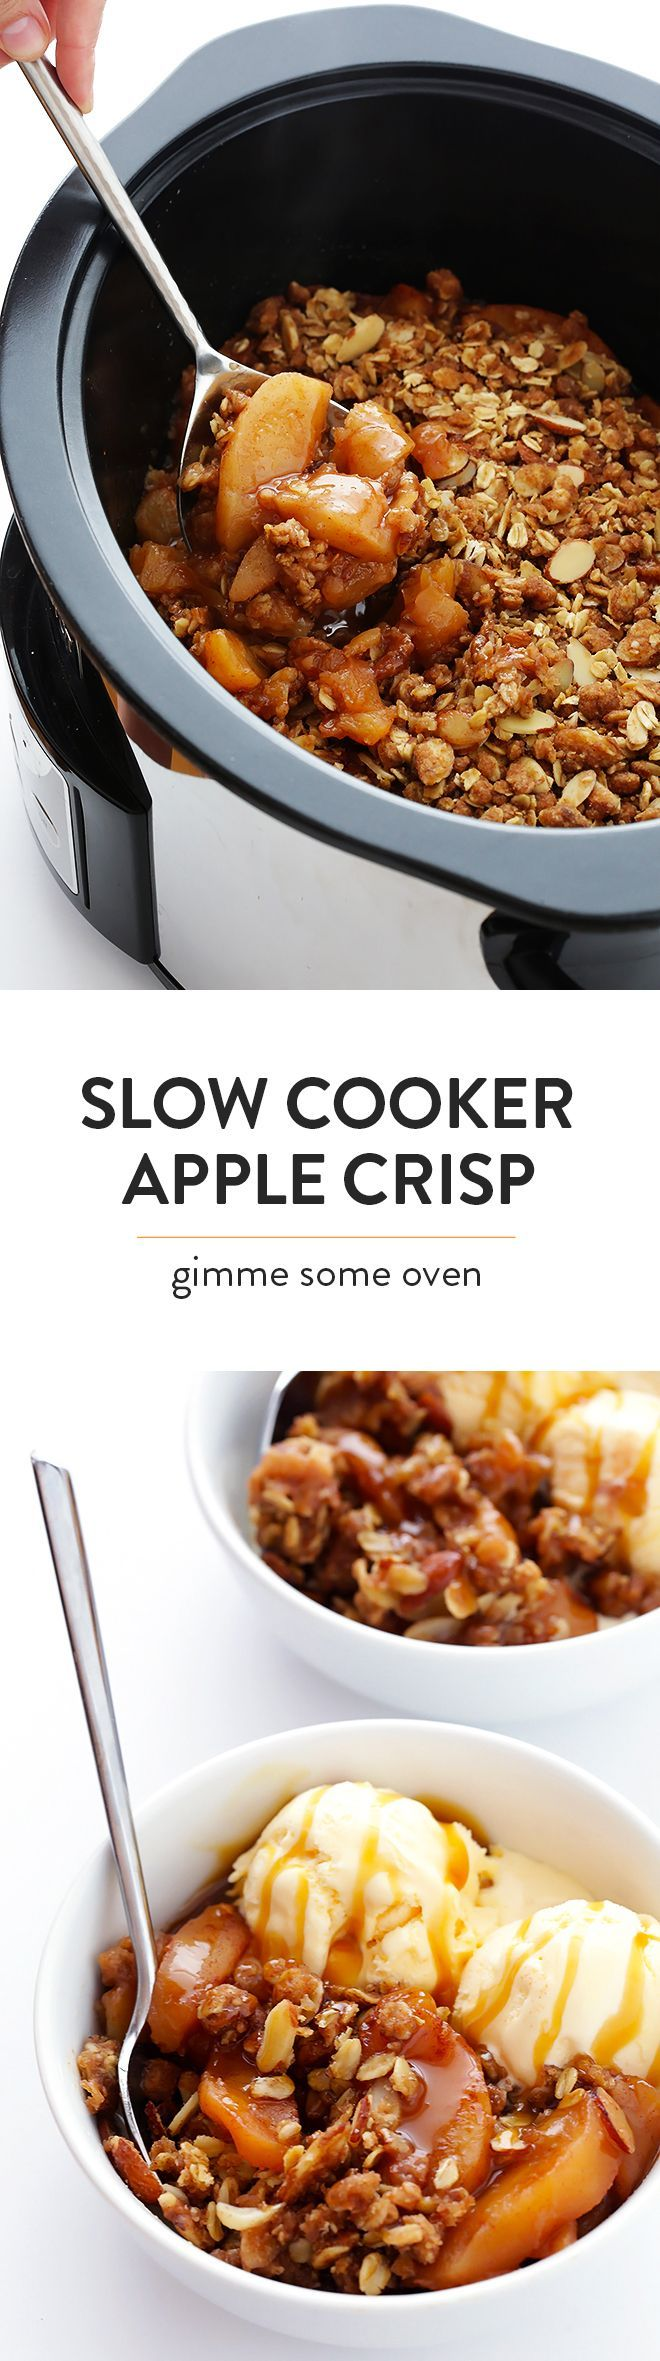 This  Slow Cooker Apple Crisp recipe is easy to make in the crock-pot, and it's made with the most delicious warm cinnamon apples and crisp oatmeal-almond topping! |